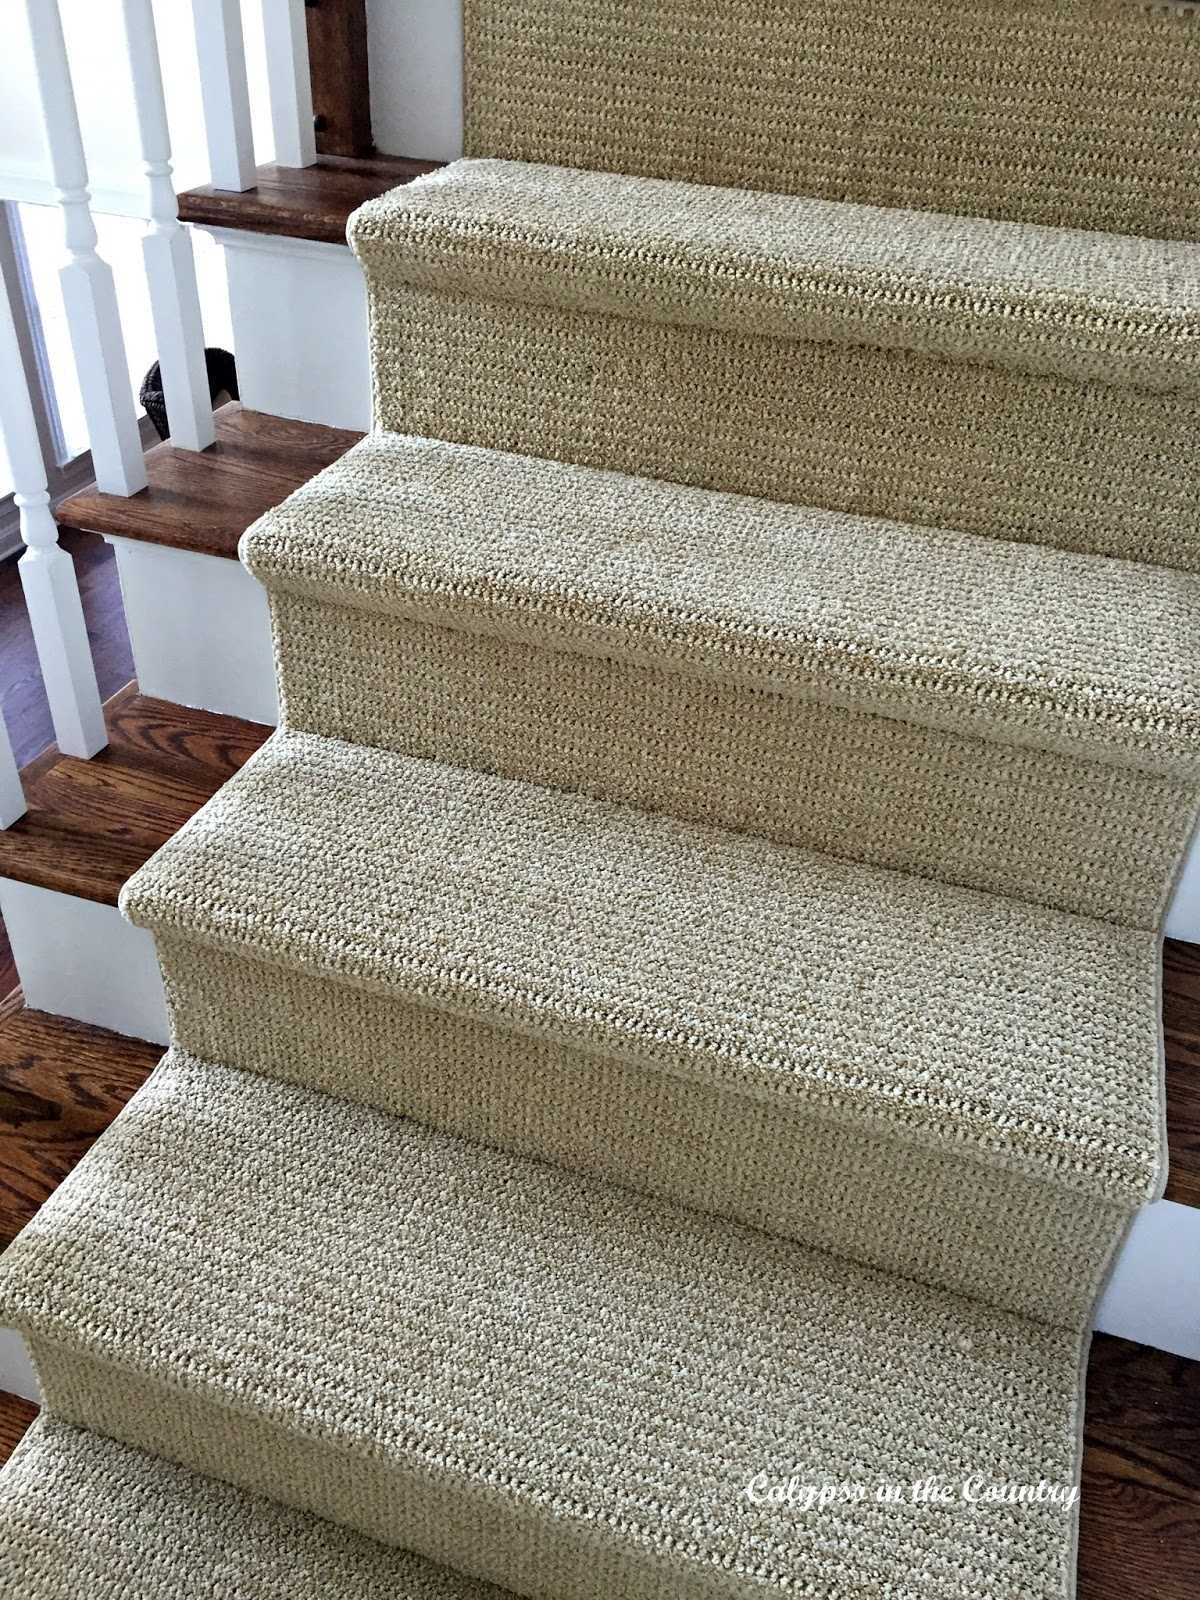 Sisal Look Runner on stairs - softer on the feet than sisal or seagrass